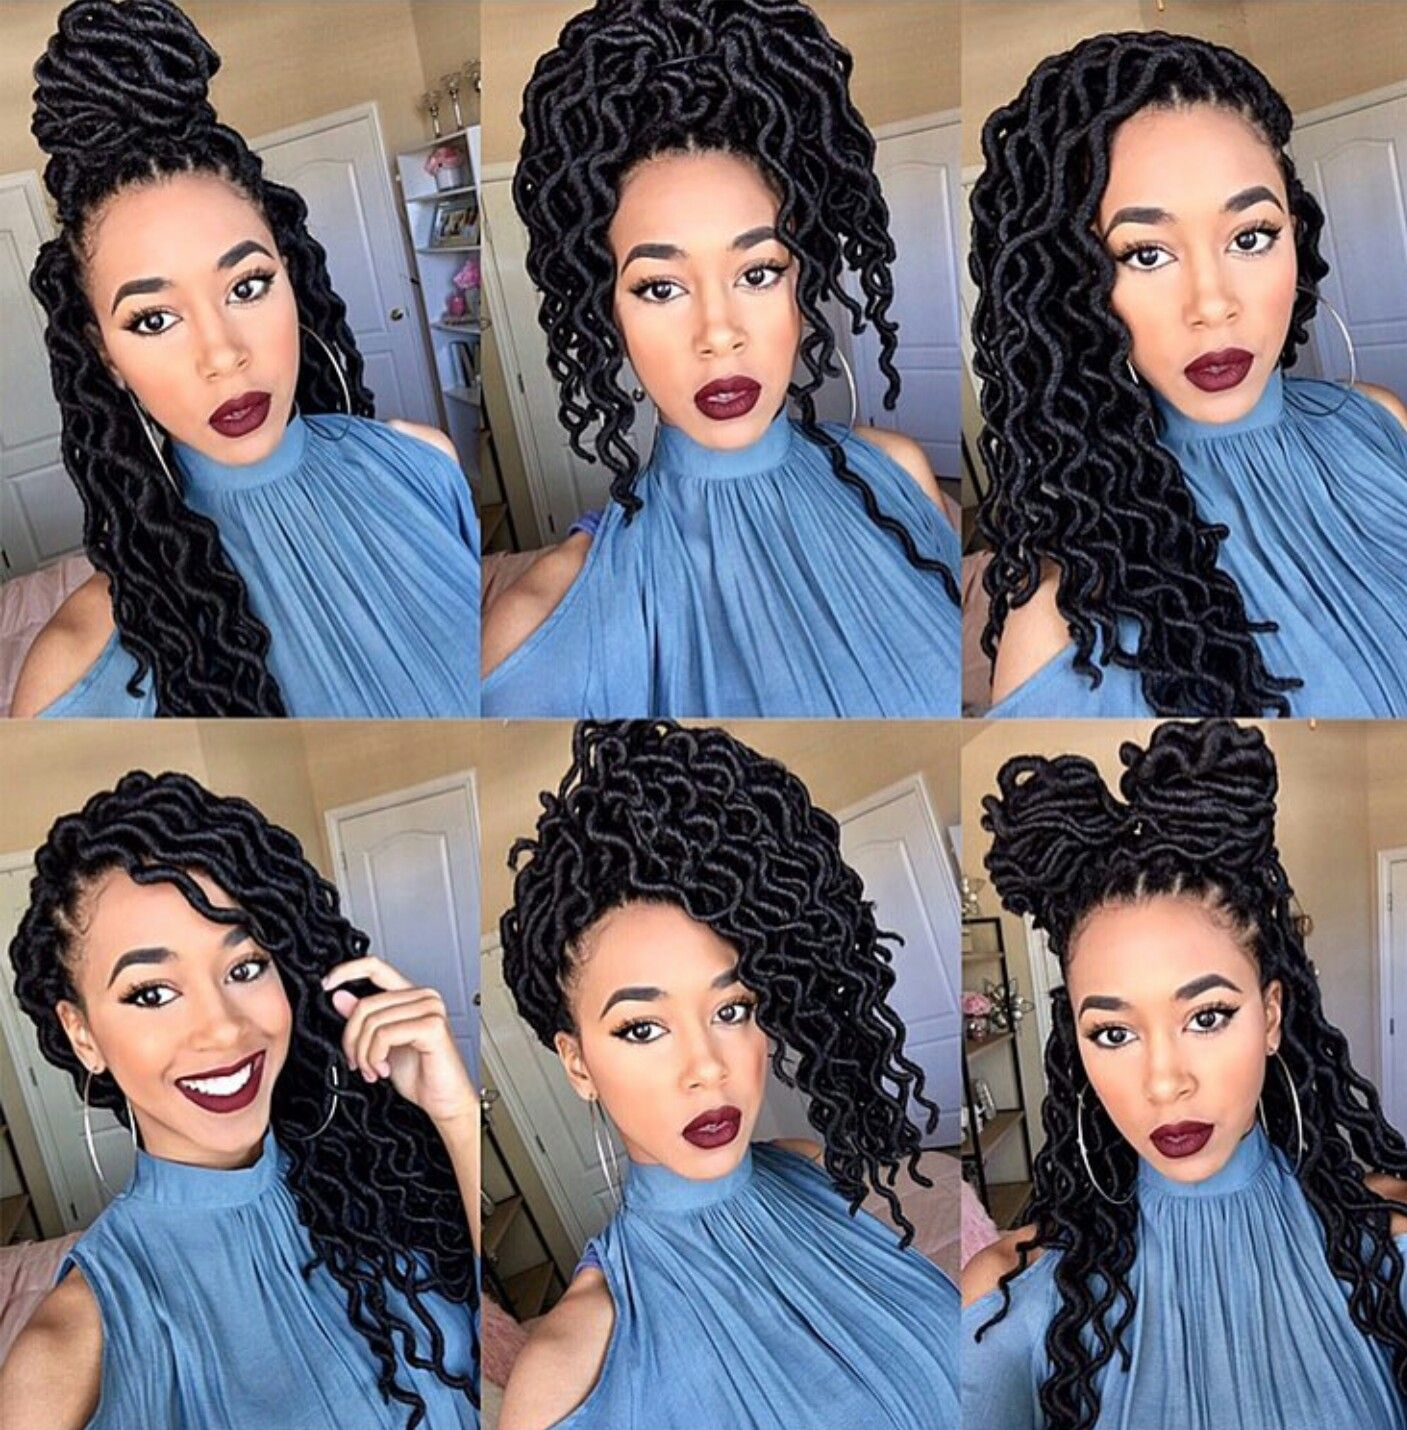 Faux Locs Hairstyles Stunning Faux Locs Faux Curly Locs  Hair Pinterest  Faux Locs Locs And